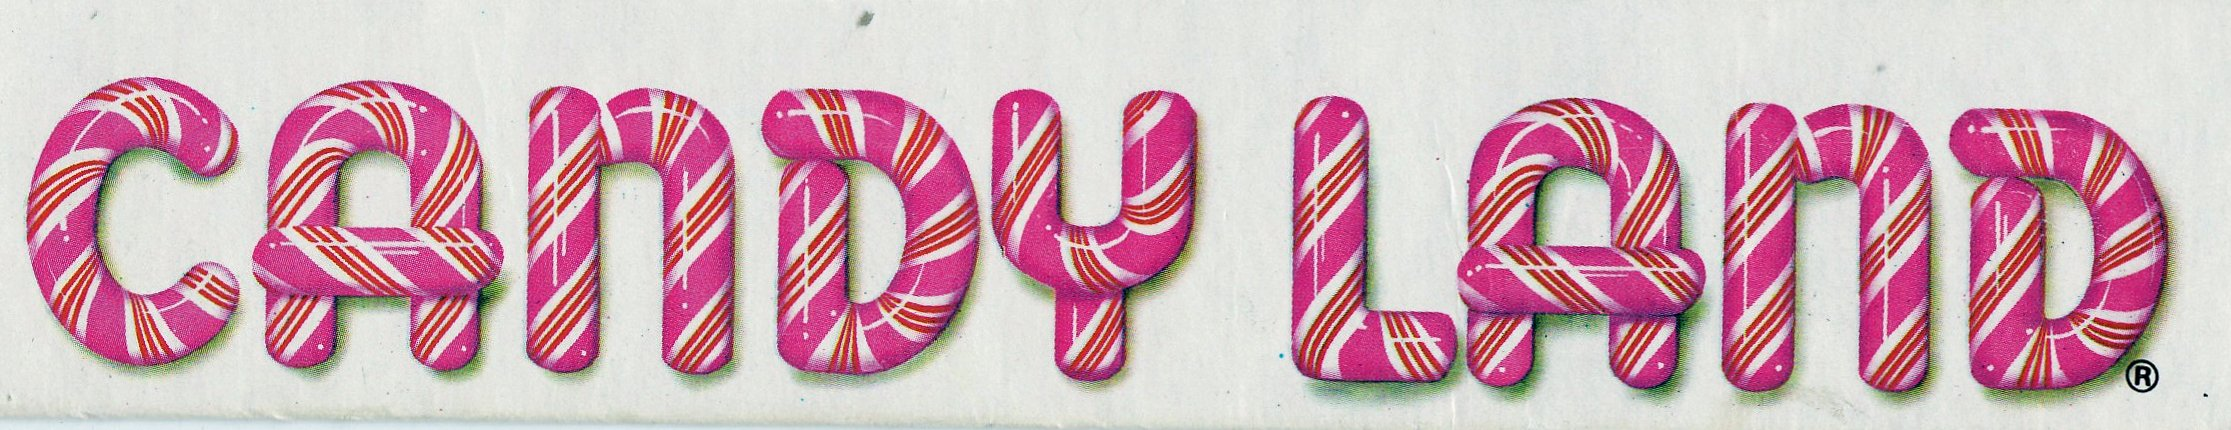 graphic about Candyland Letters Printable titled Candyland Trademarks